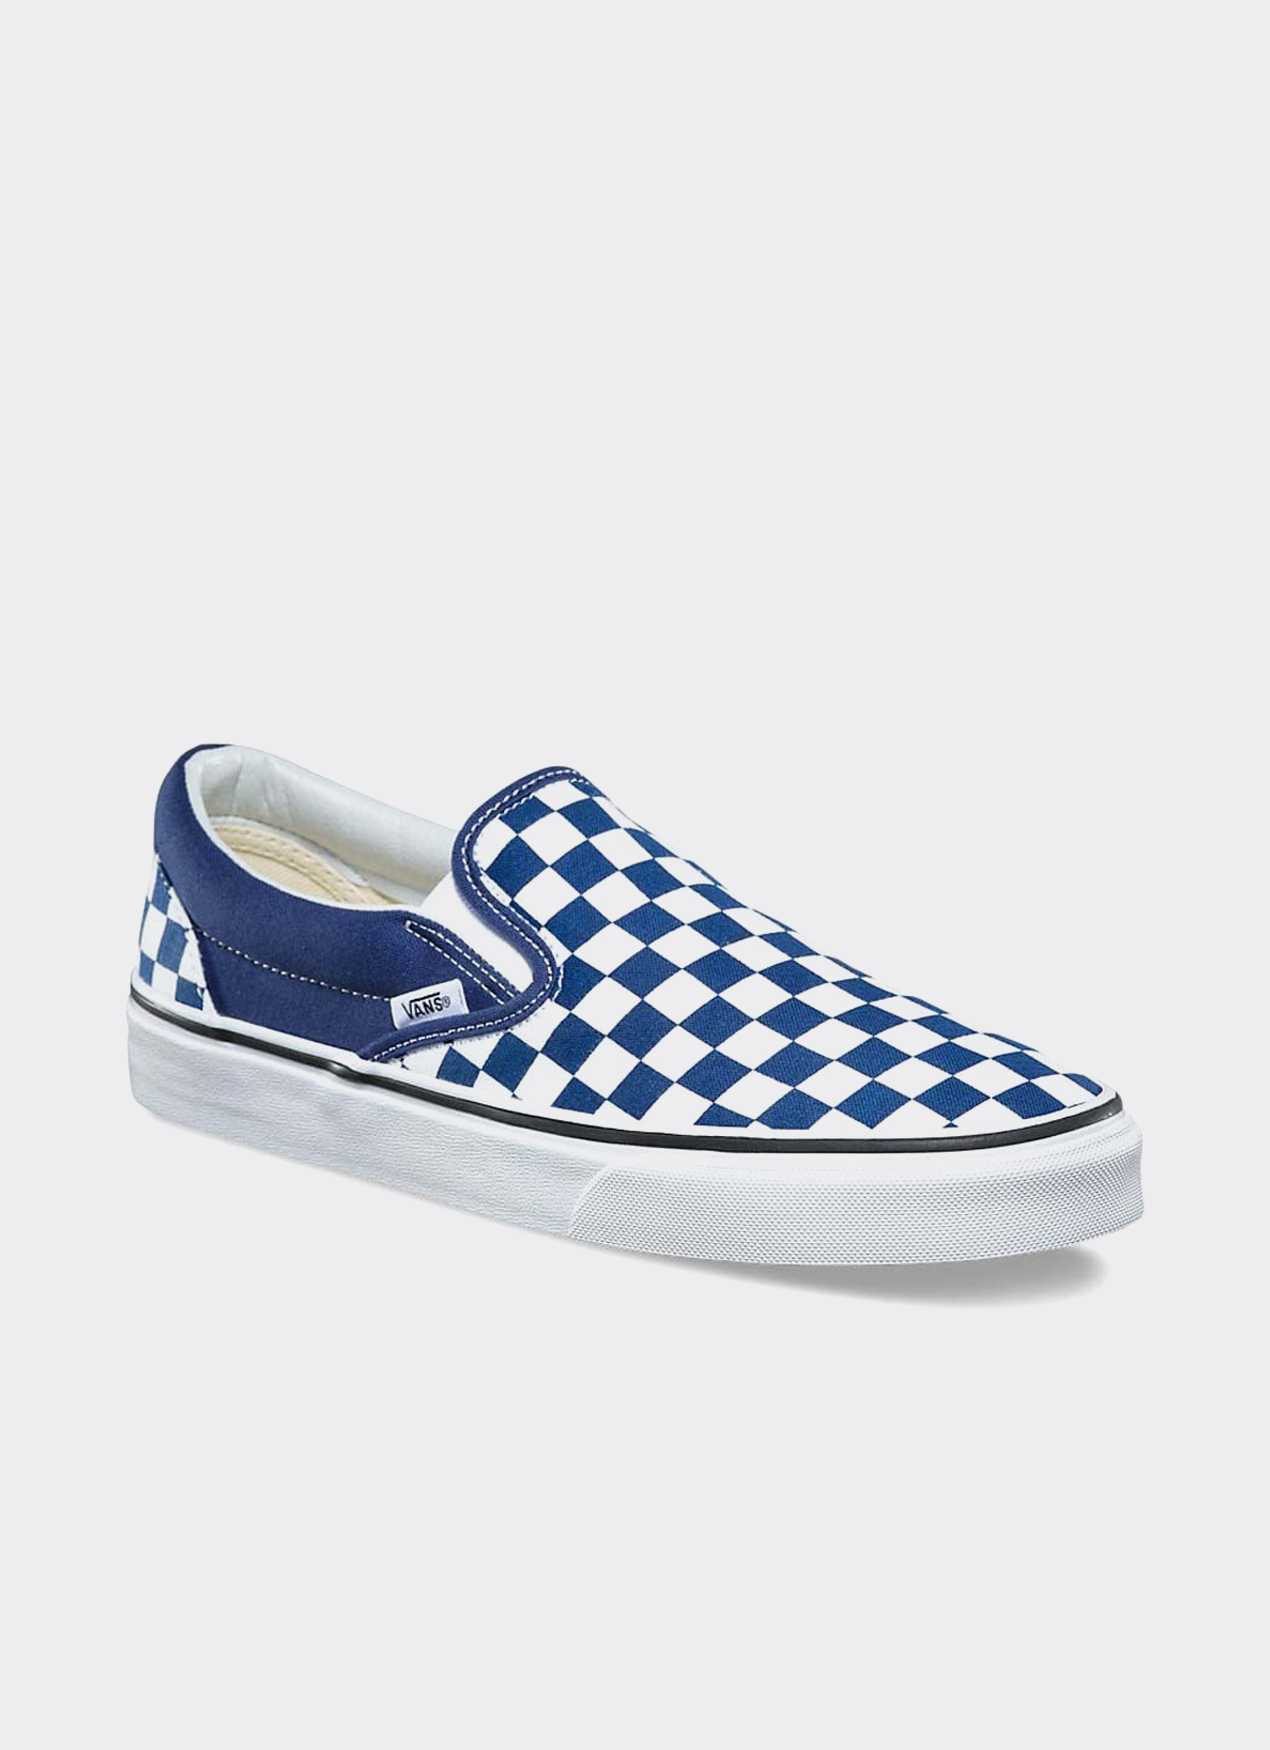 VANS Blue Checkerboard Slip-On Sneakers